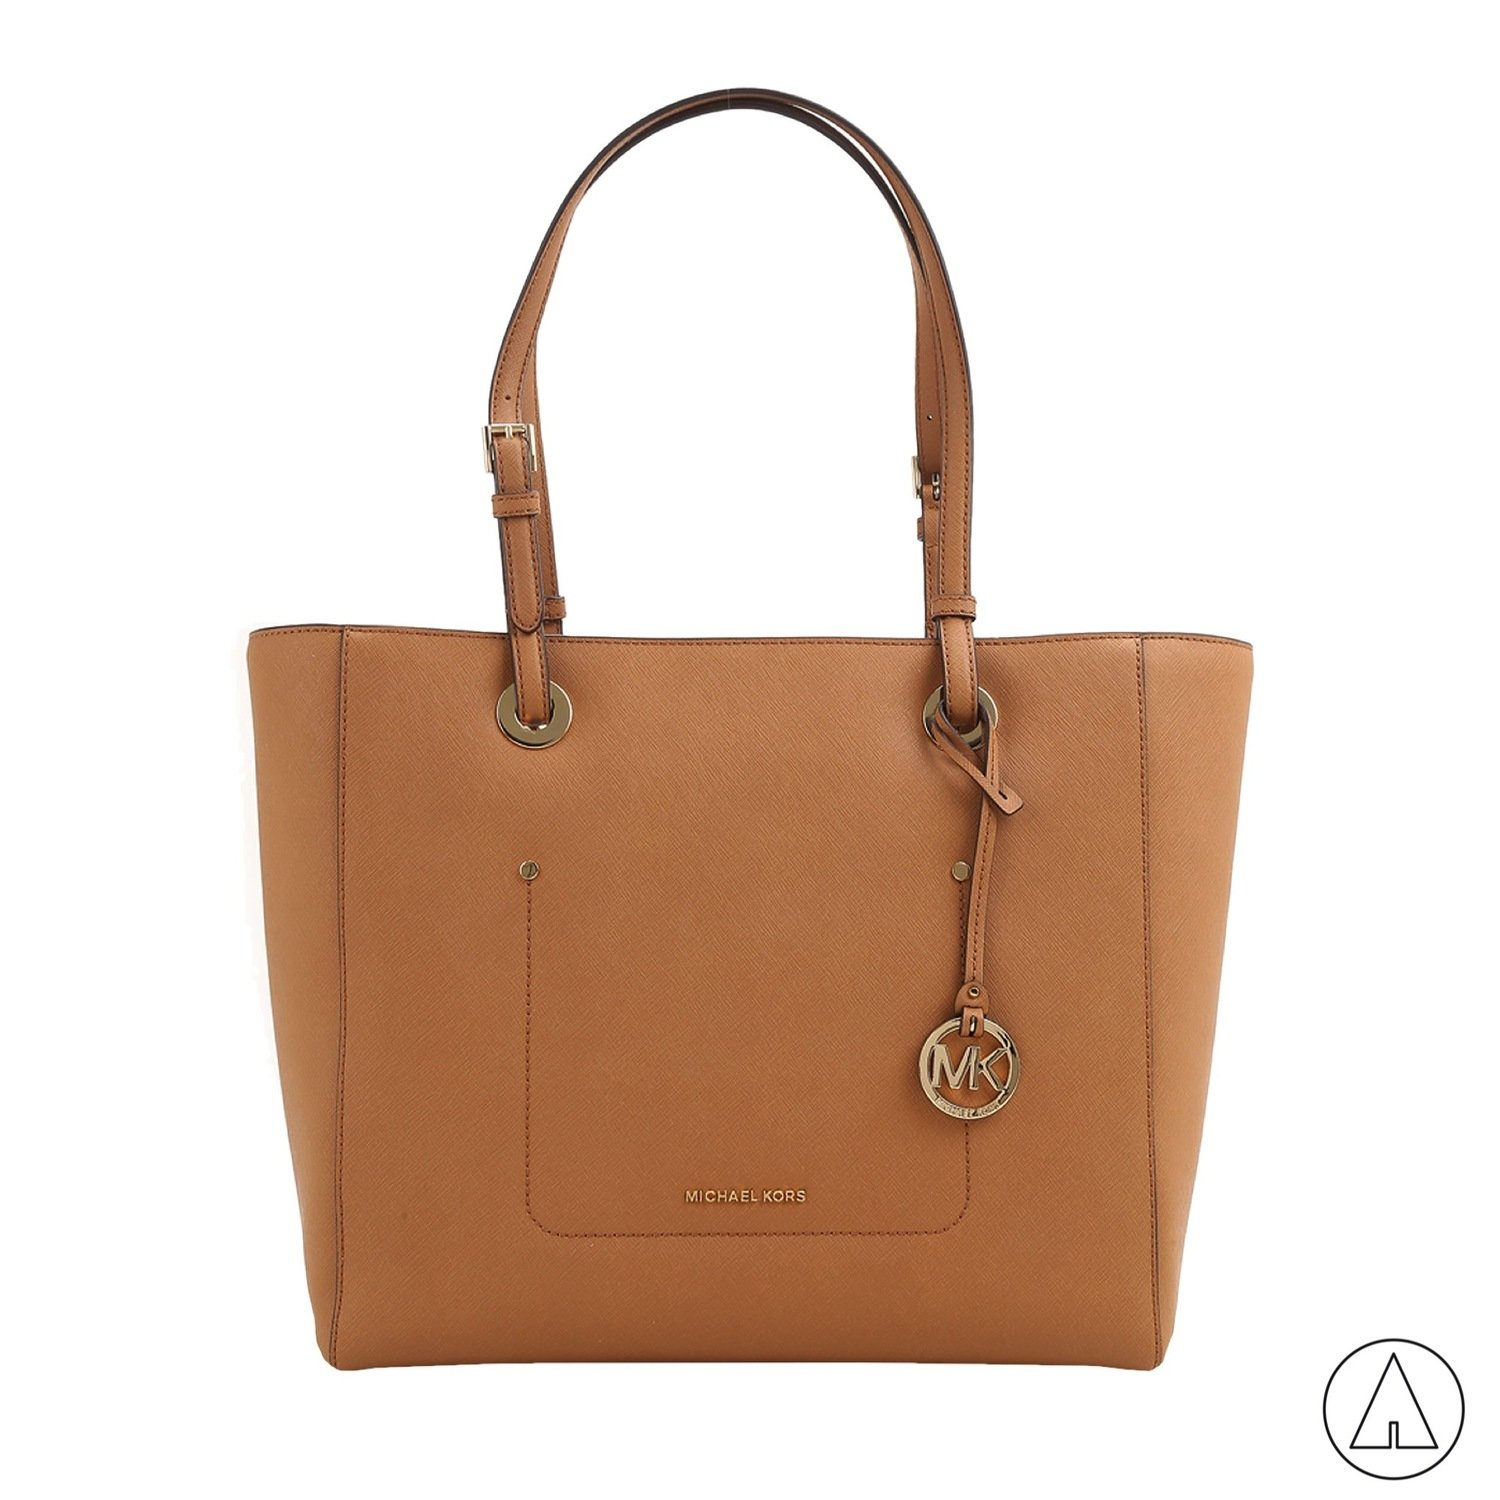 MICHAEL KORS • Walsh LG Top Zip Tote - Acorn